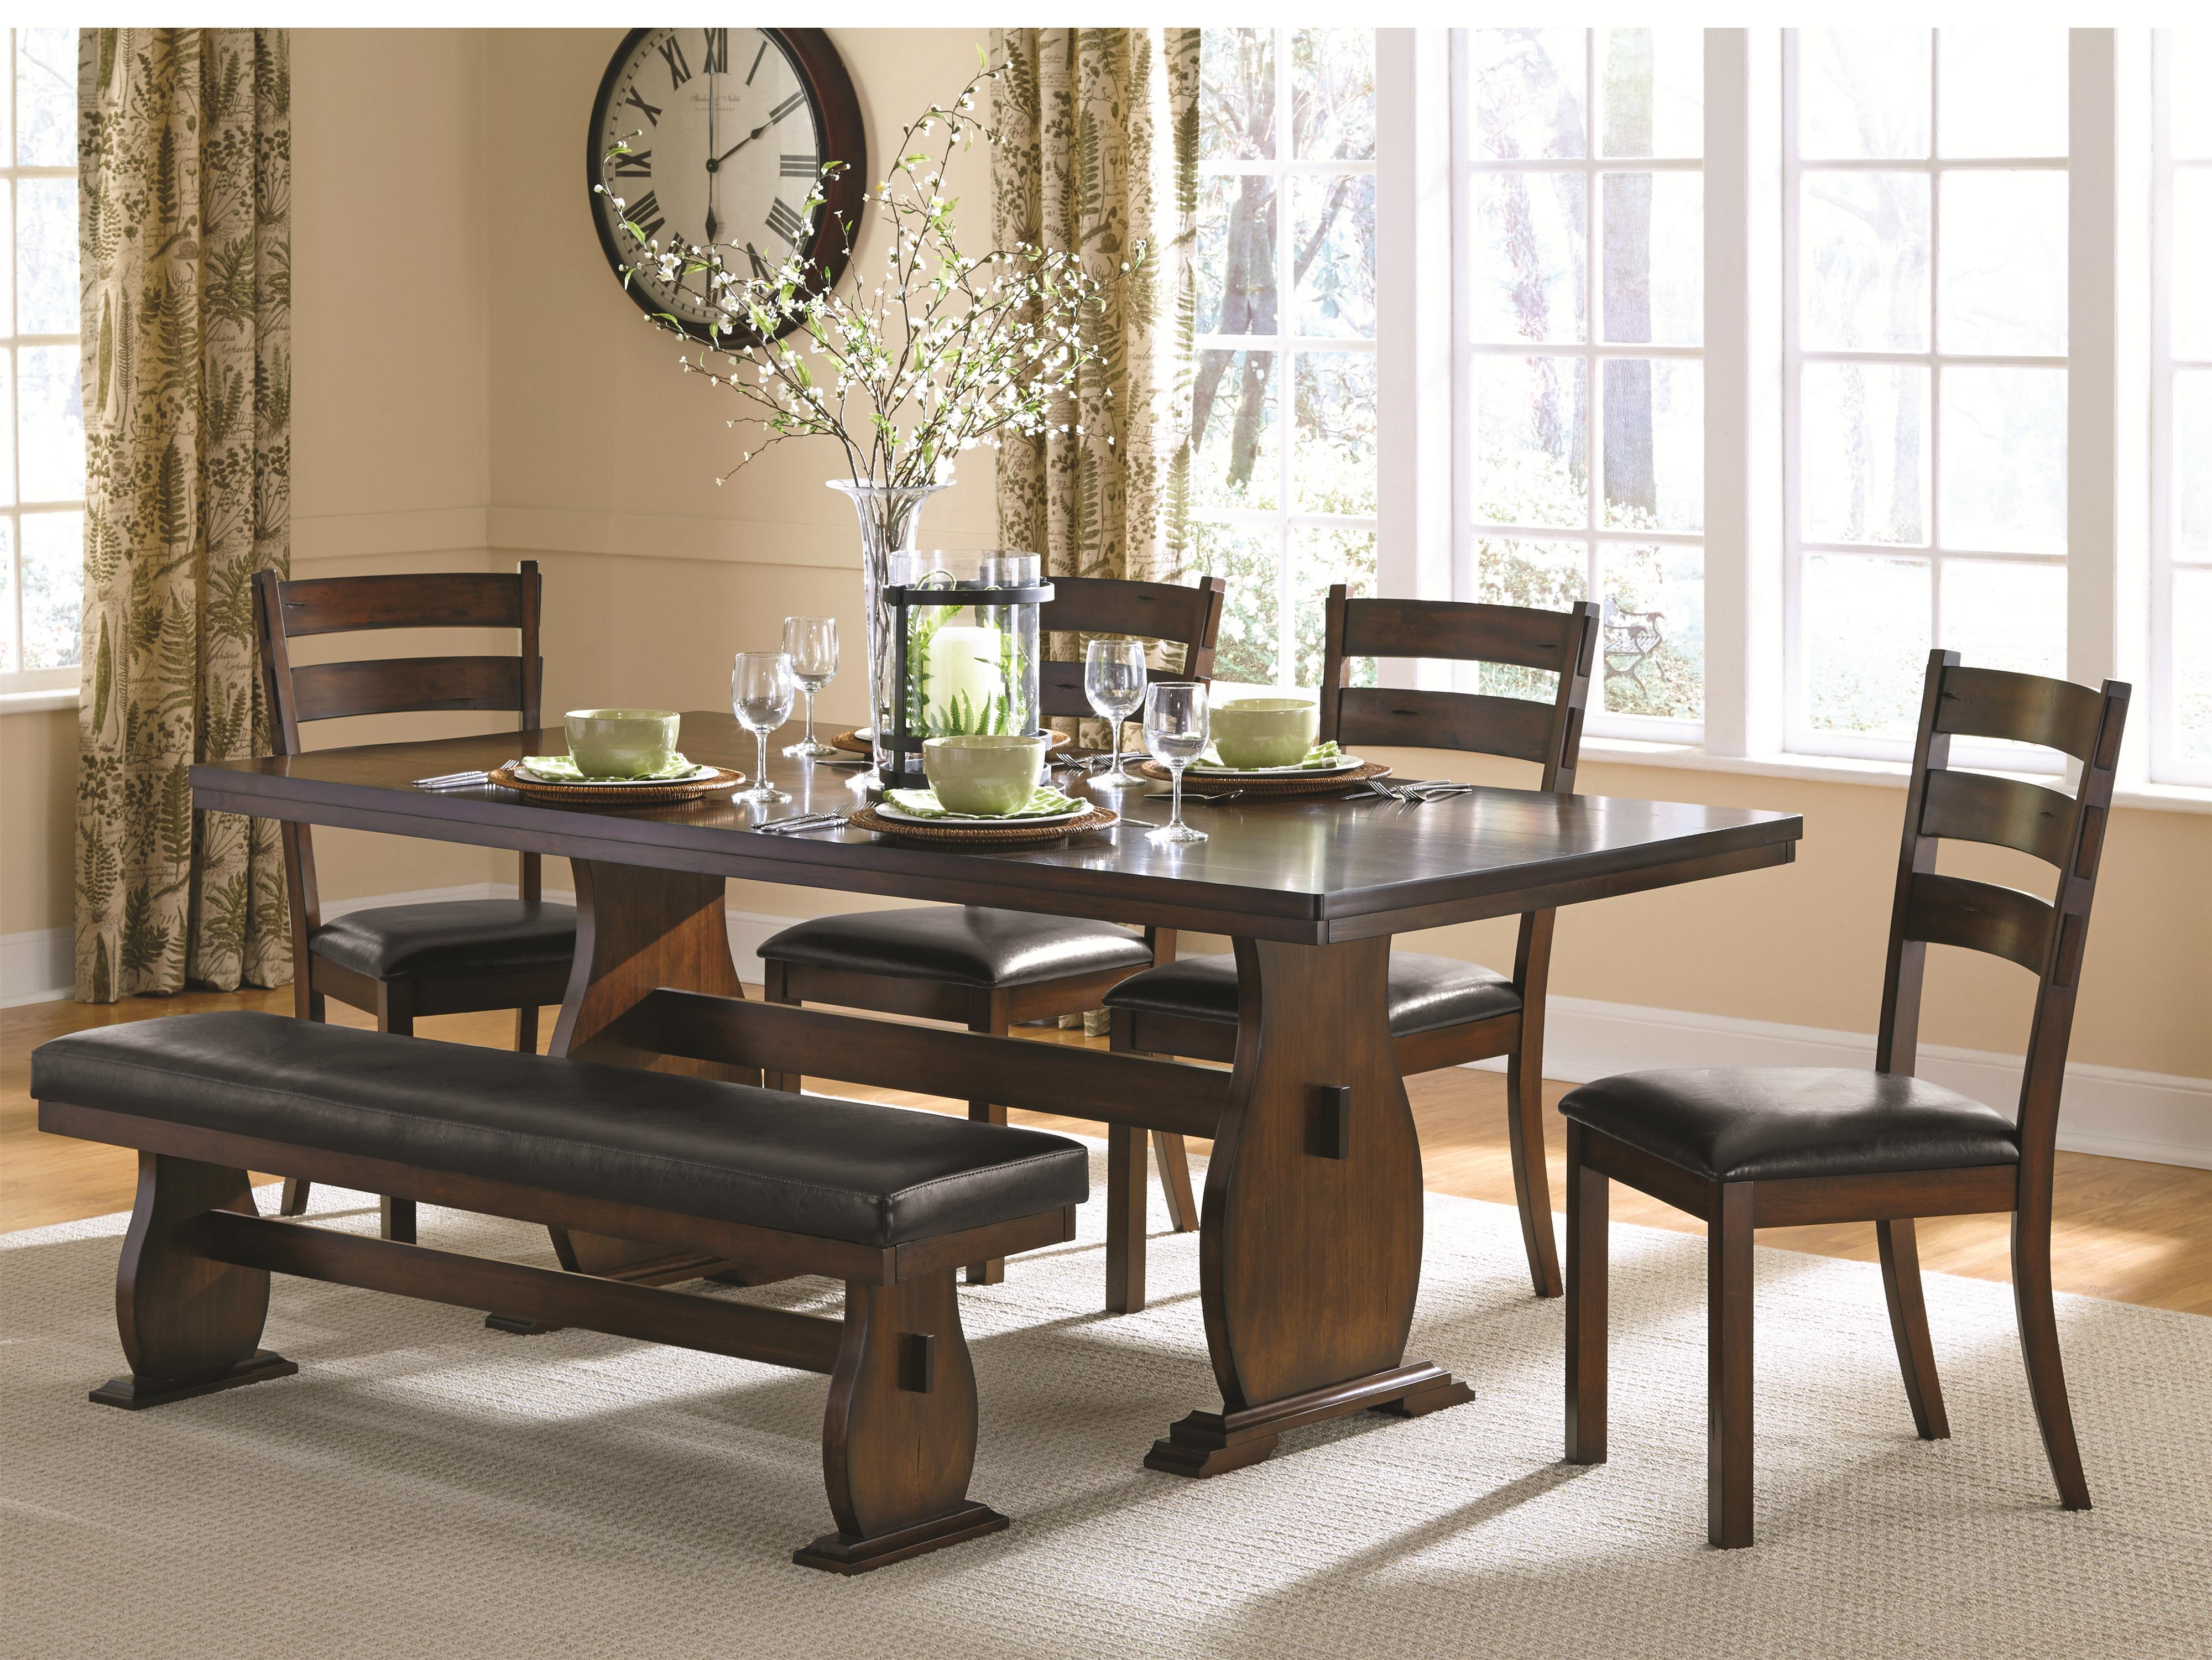 Campbell Trestle Table with 4 Side Chairs and Dining Bench